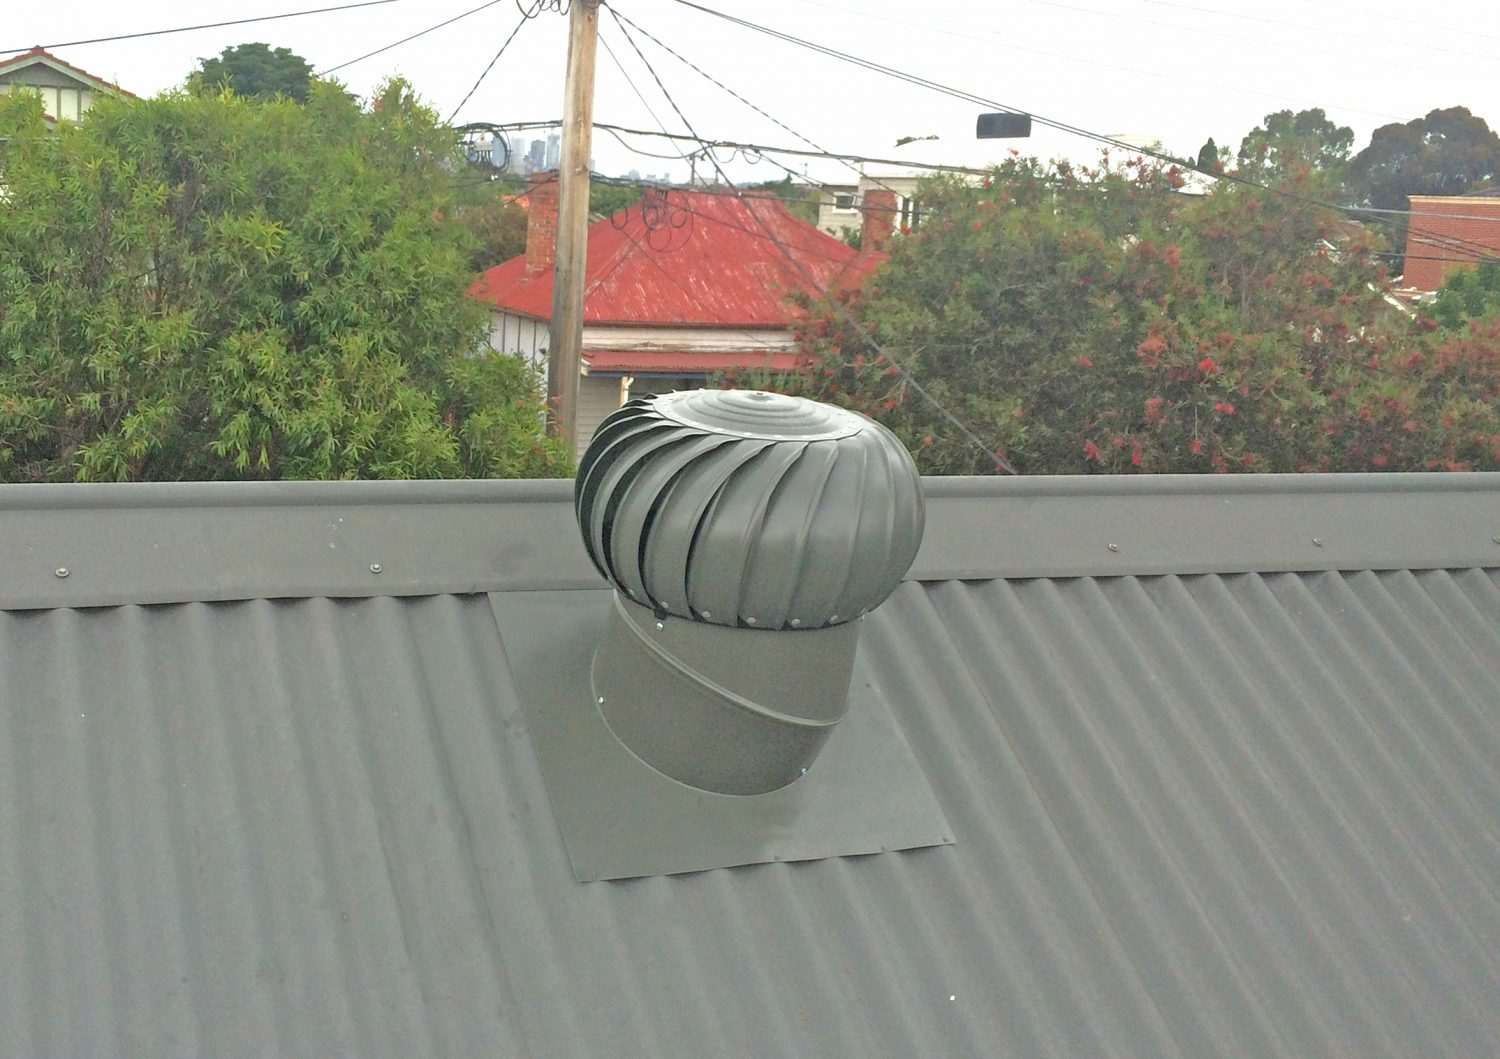 Whirly bird installation on a metal roof, Geelong